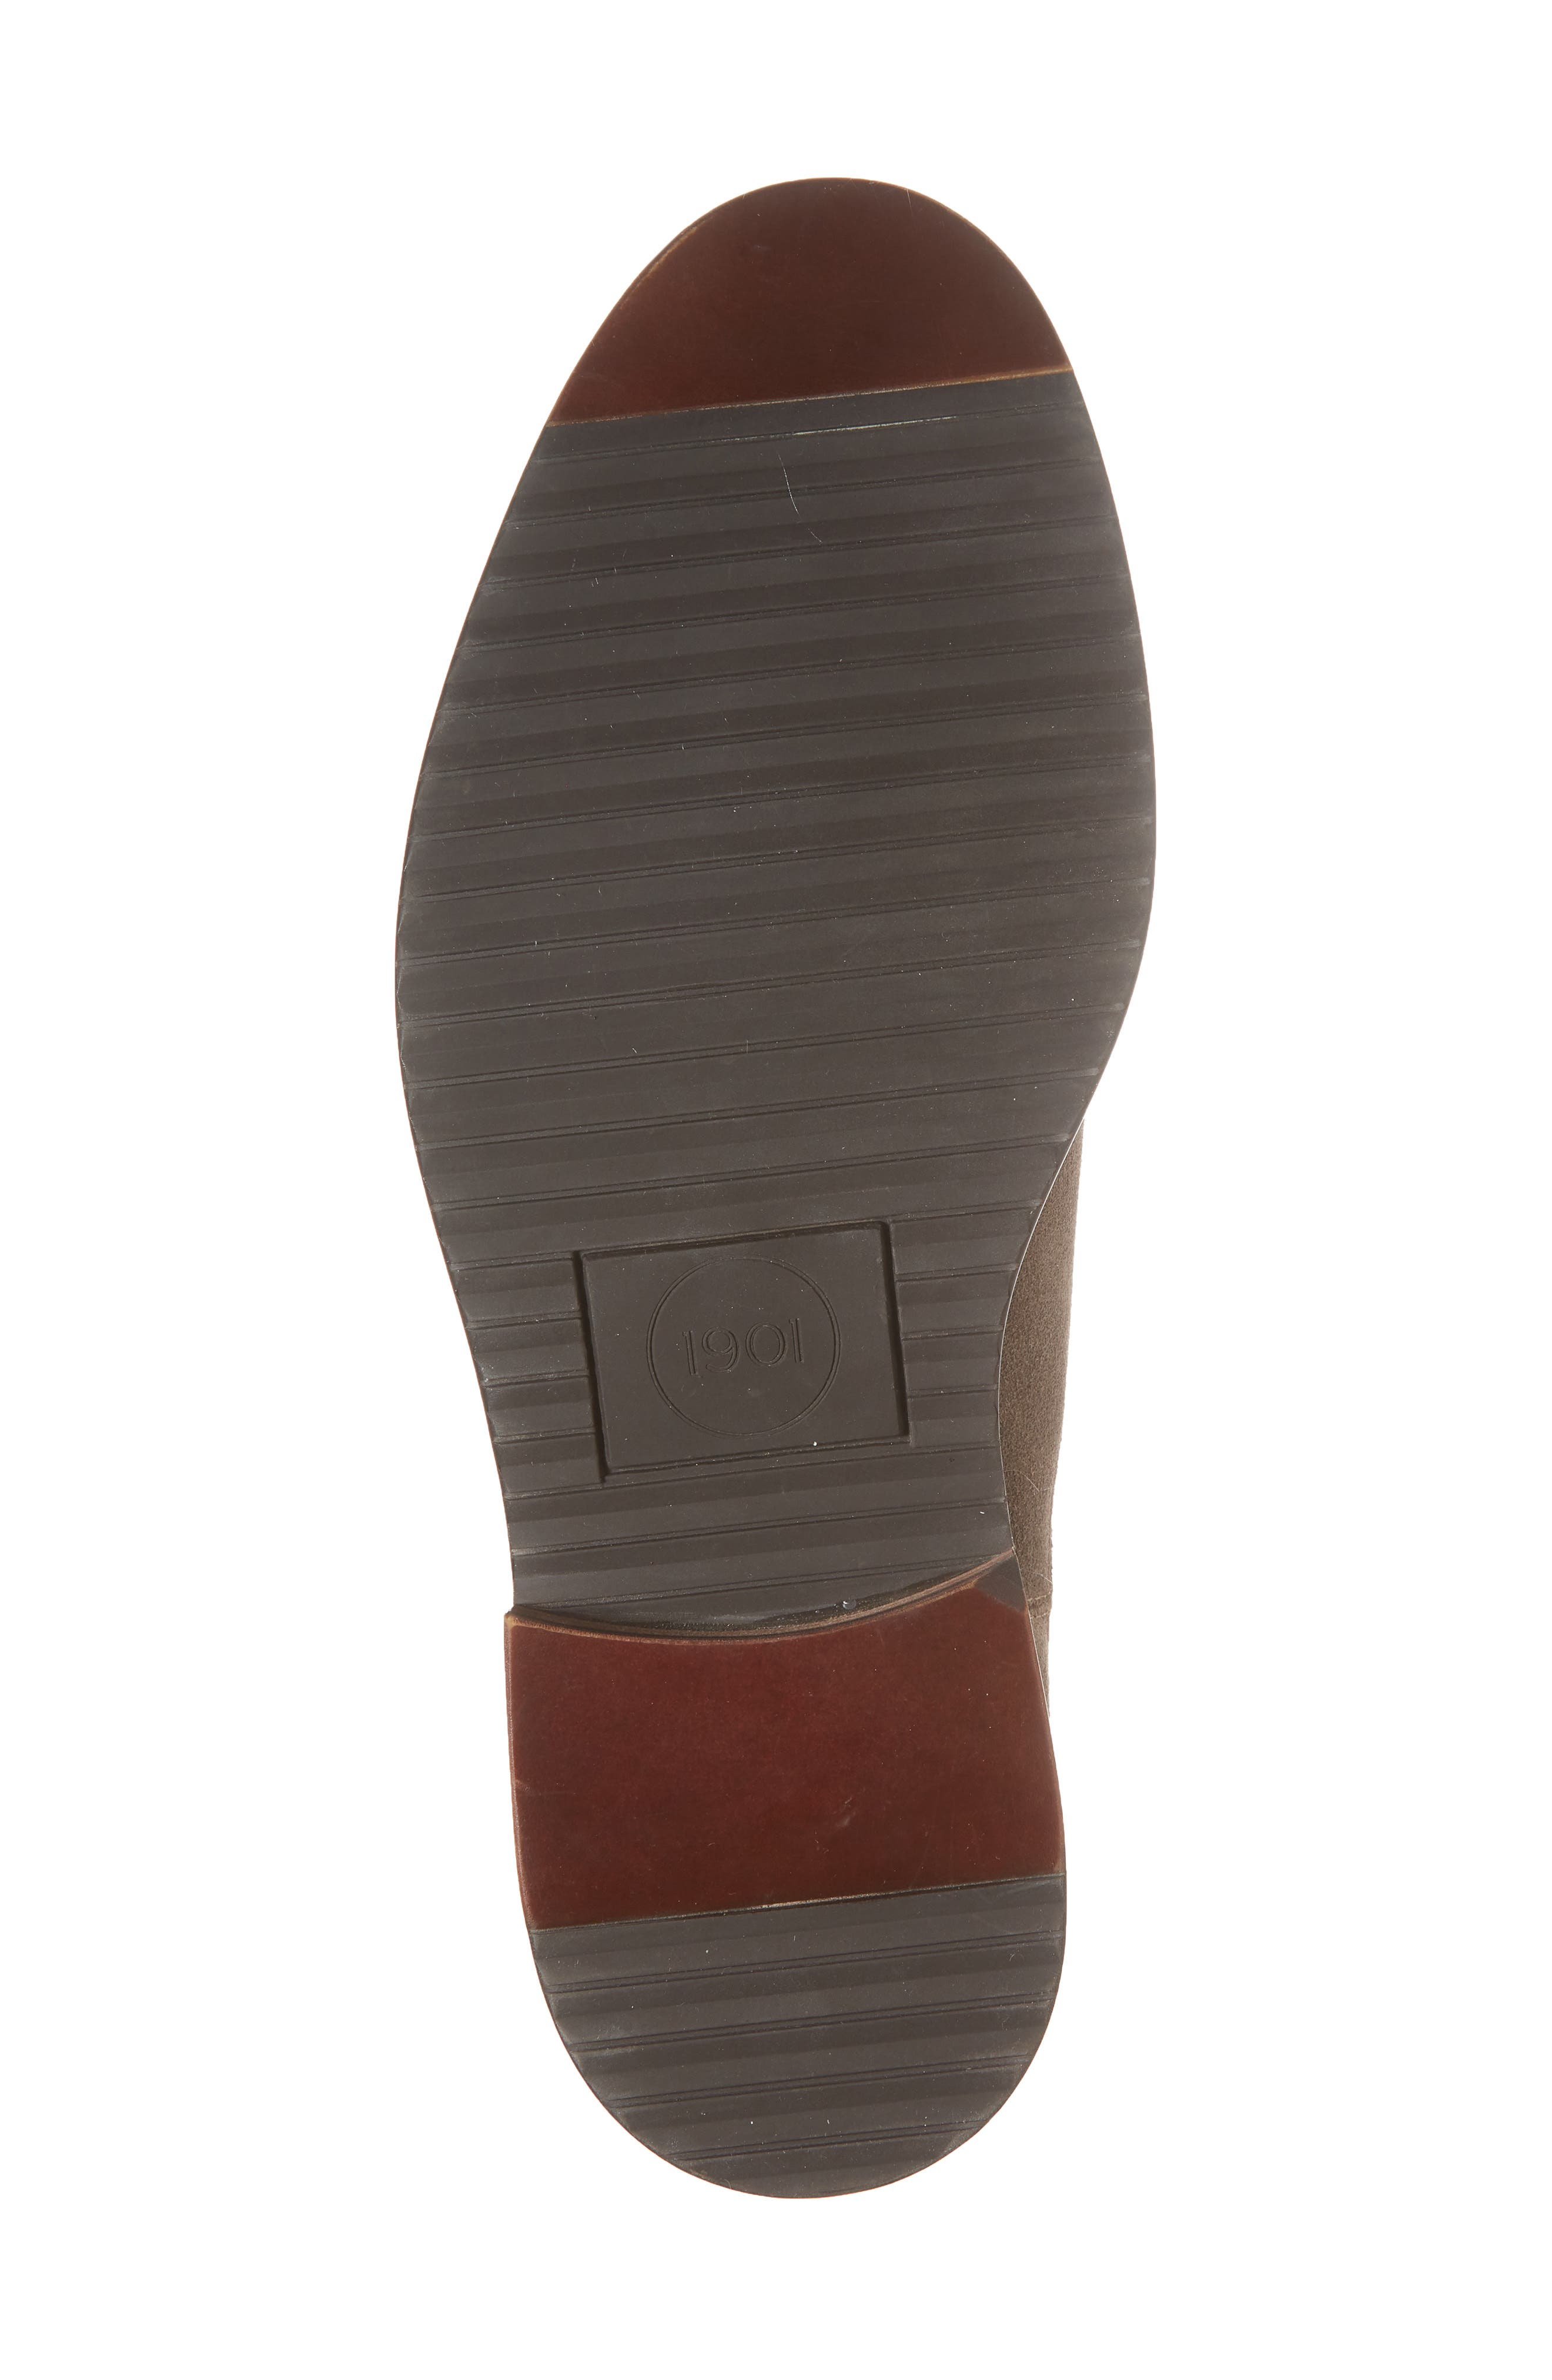 Brooks Chelsea Boot,                             Alternate thumbnail 6, color,                             TAUPE SUEDE